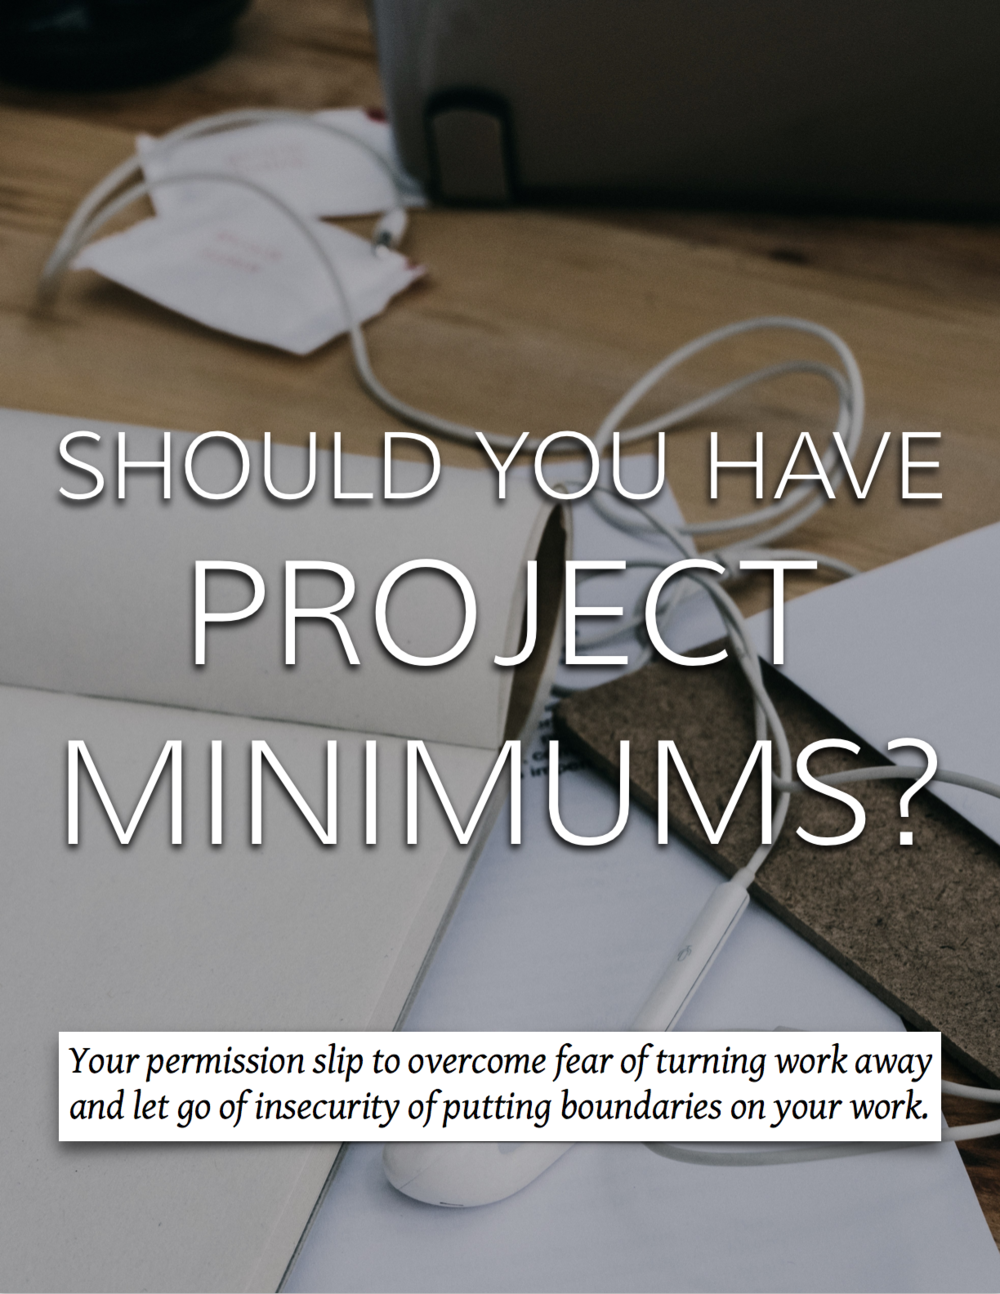 Yes!  Implement project minimums!  #interiordesignbusiness #cktradesecrets #projectminimums